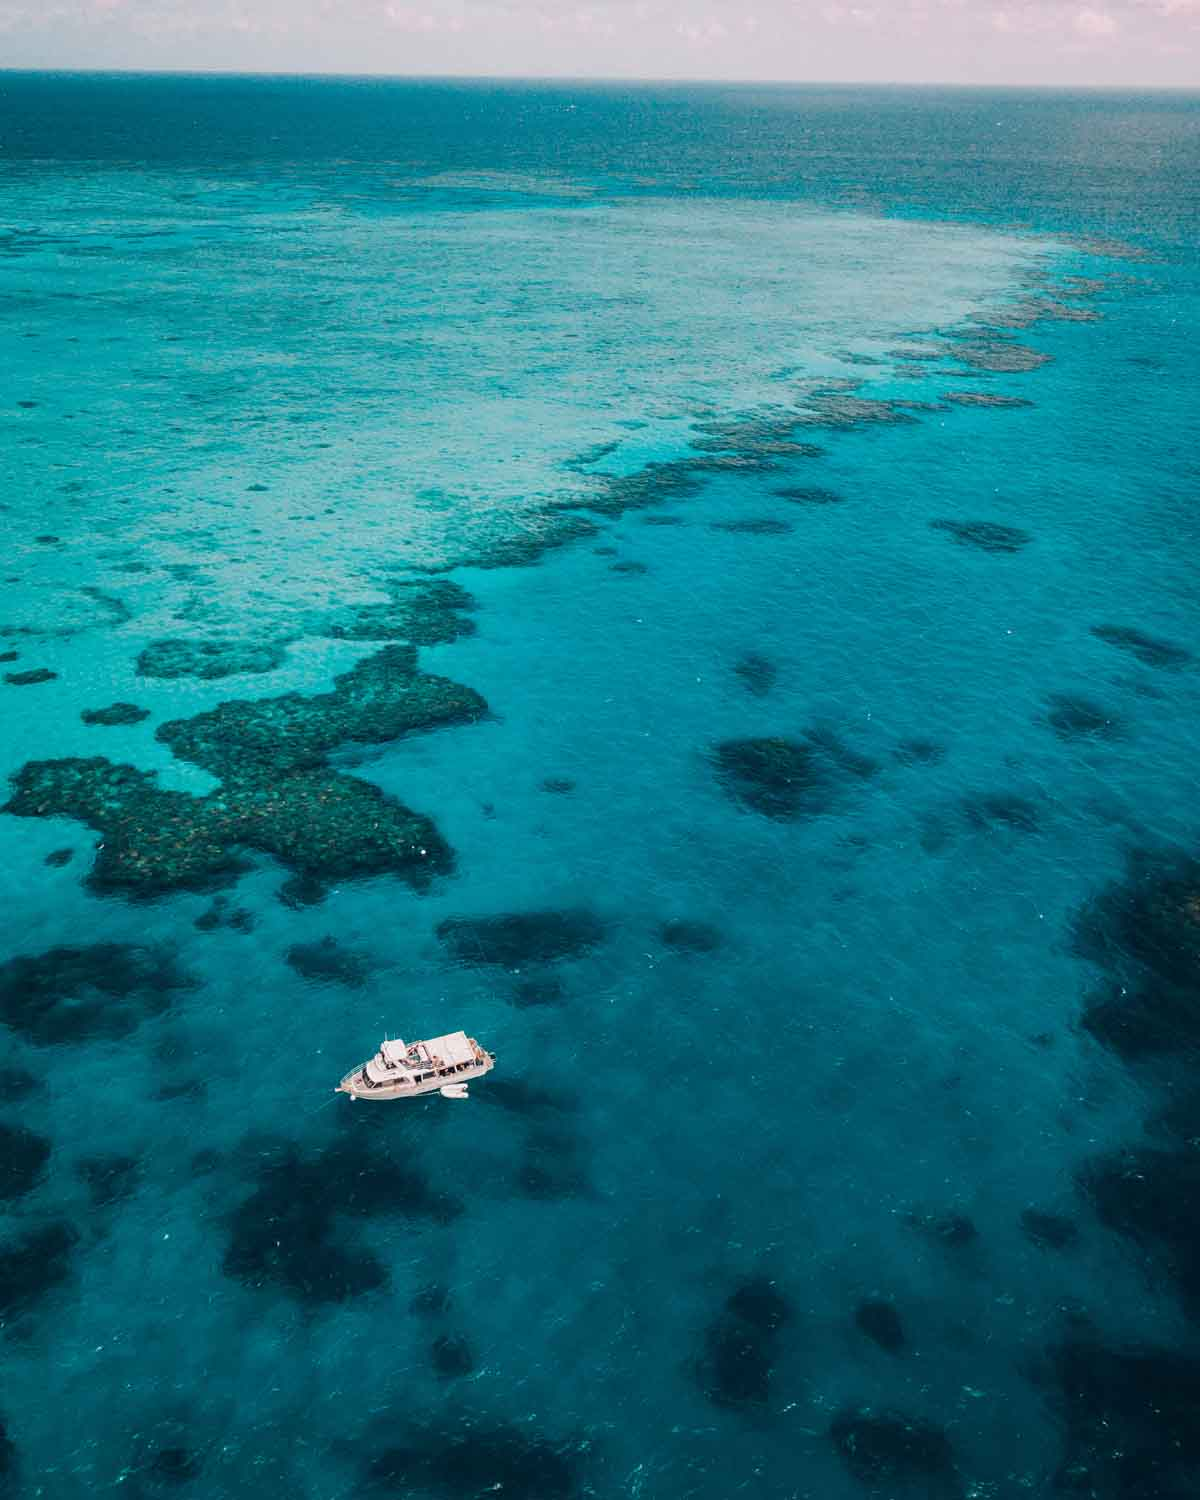 Aerial view of MV Adrenalin driving on the water towards Lodestone Reef